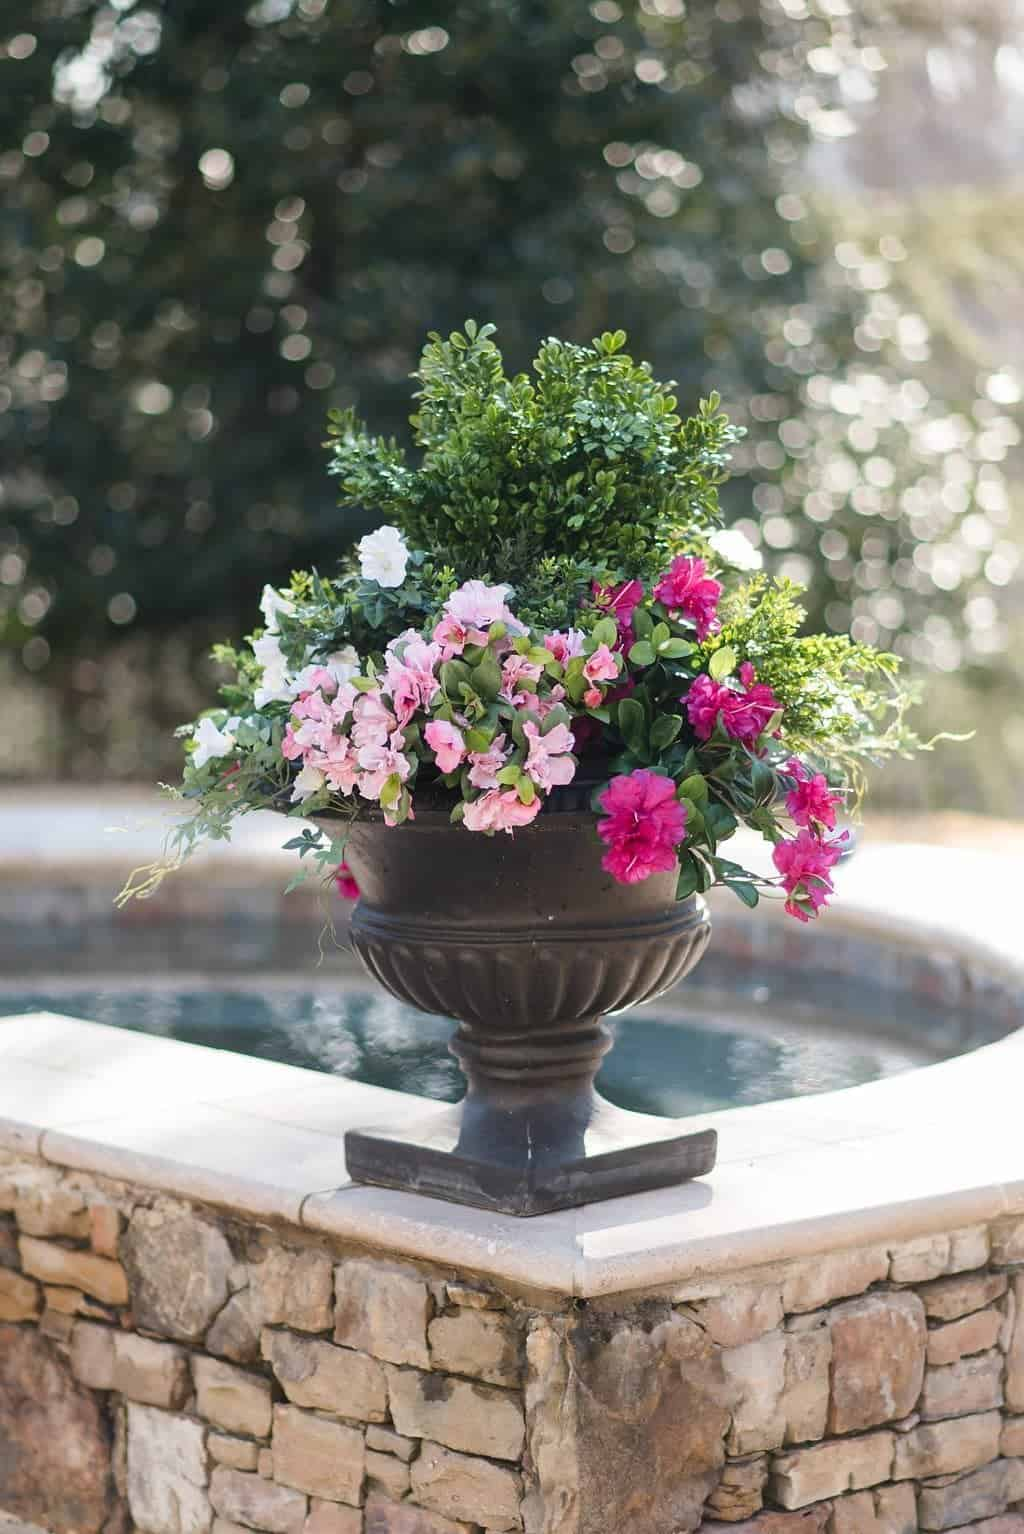 curb appeal tip - use fake flowers in outdoor decor